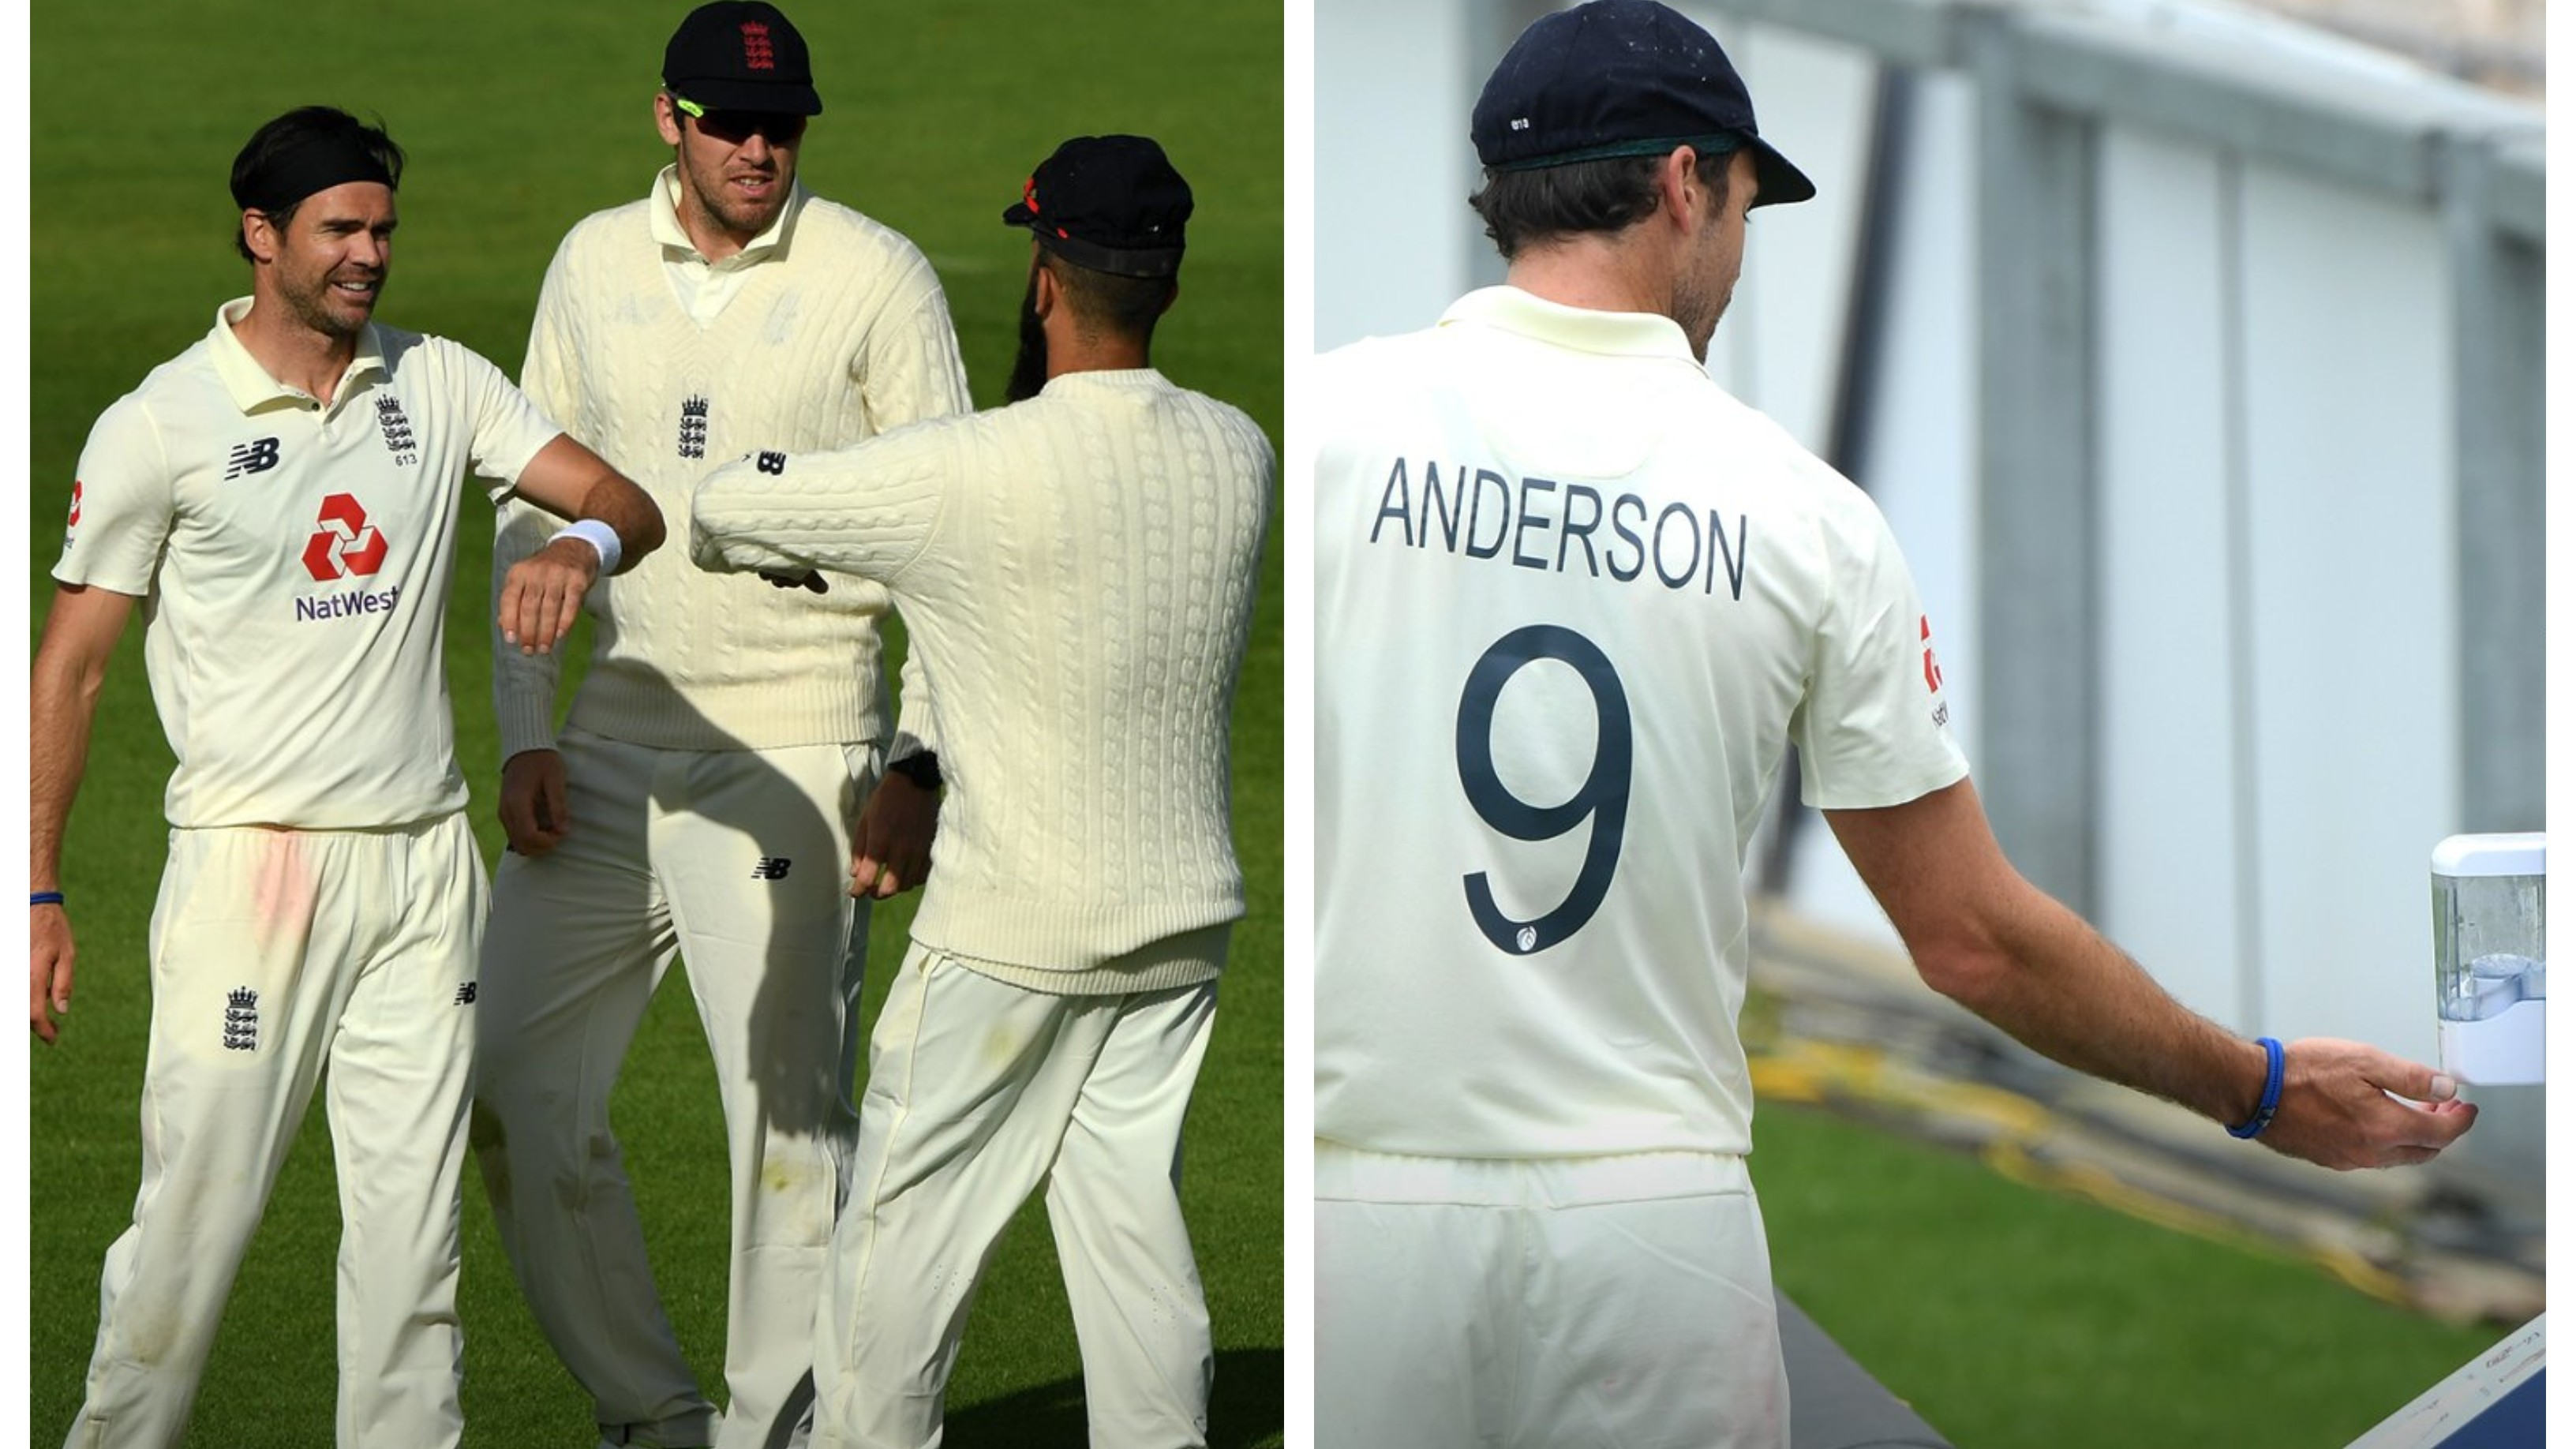 WATCH: Anderson maintains physical distancing while celebrating wickets; uses sanitiser during warm-up game